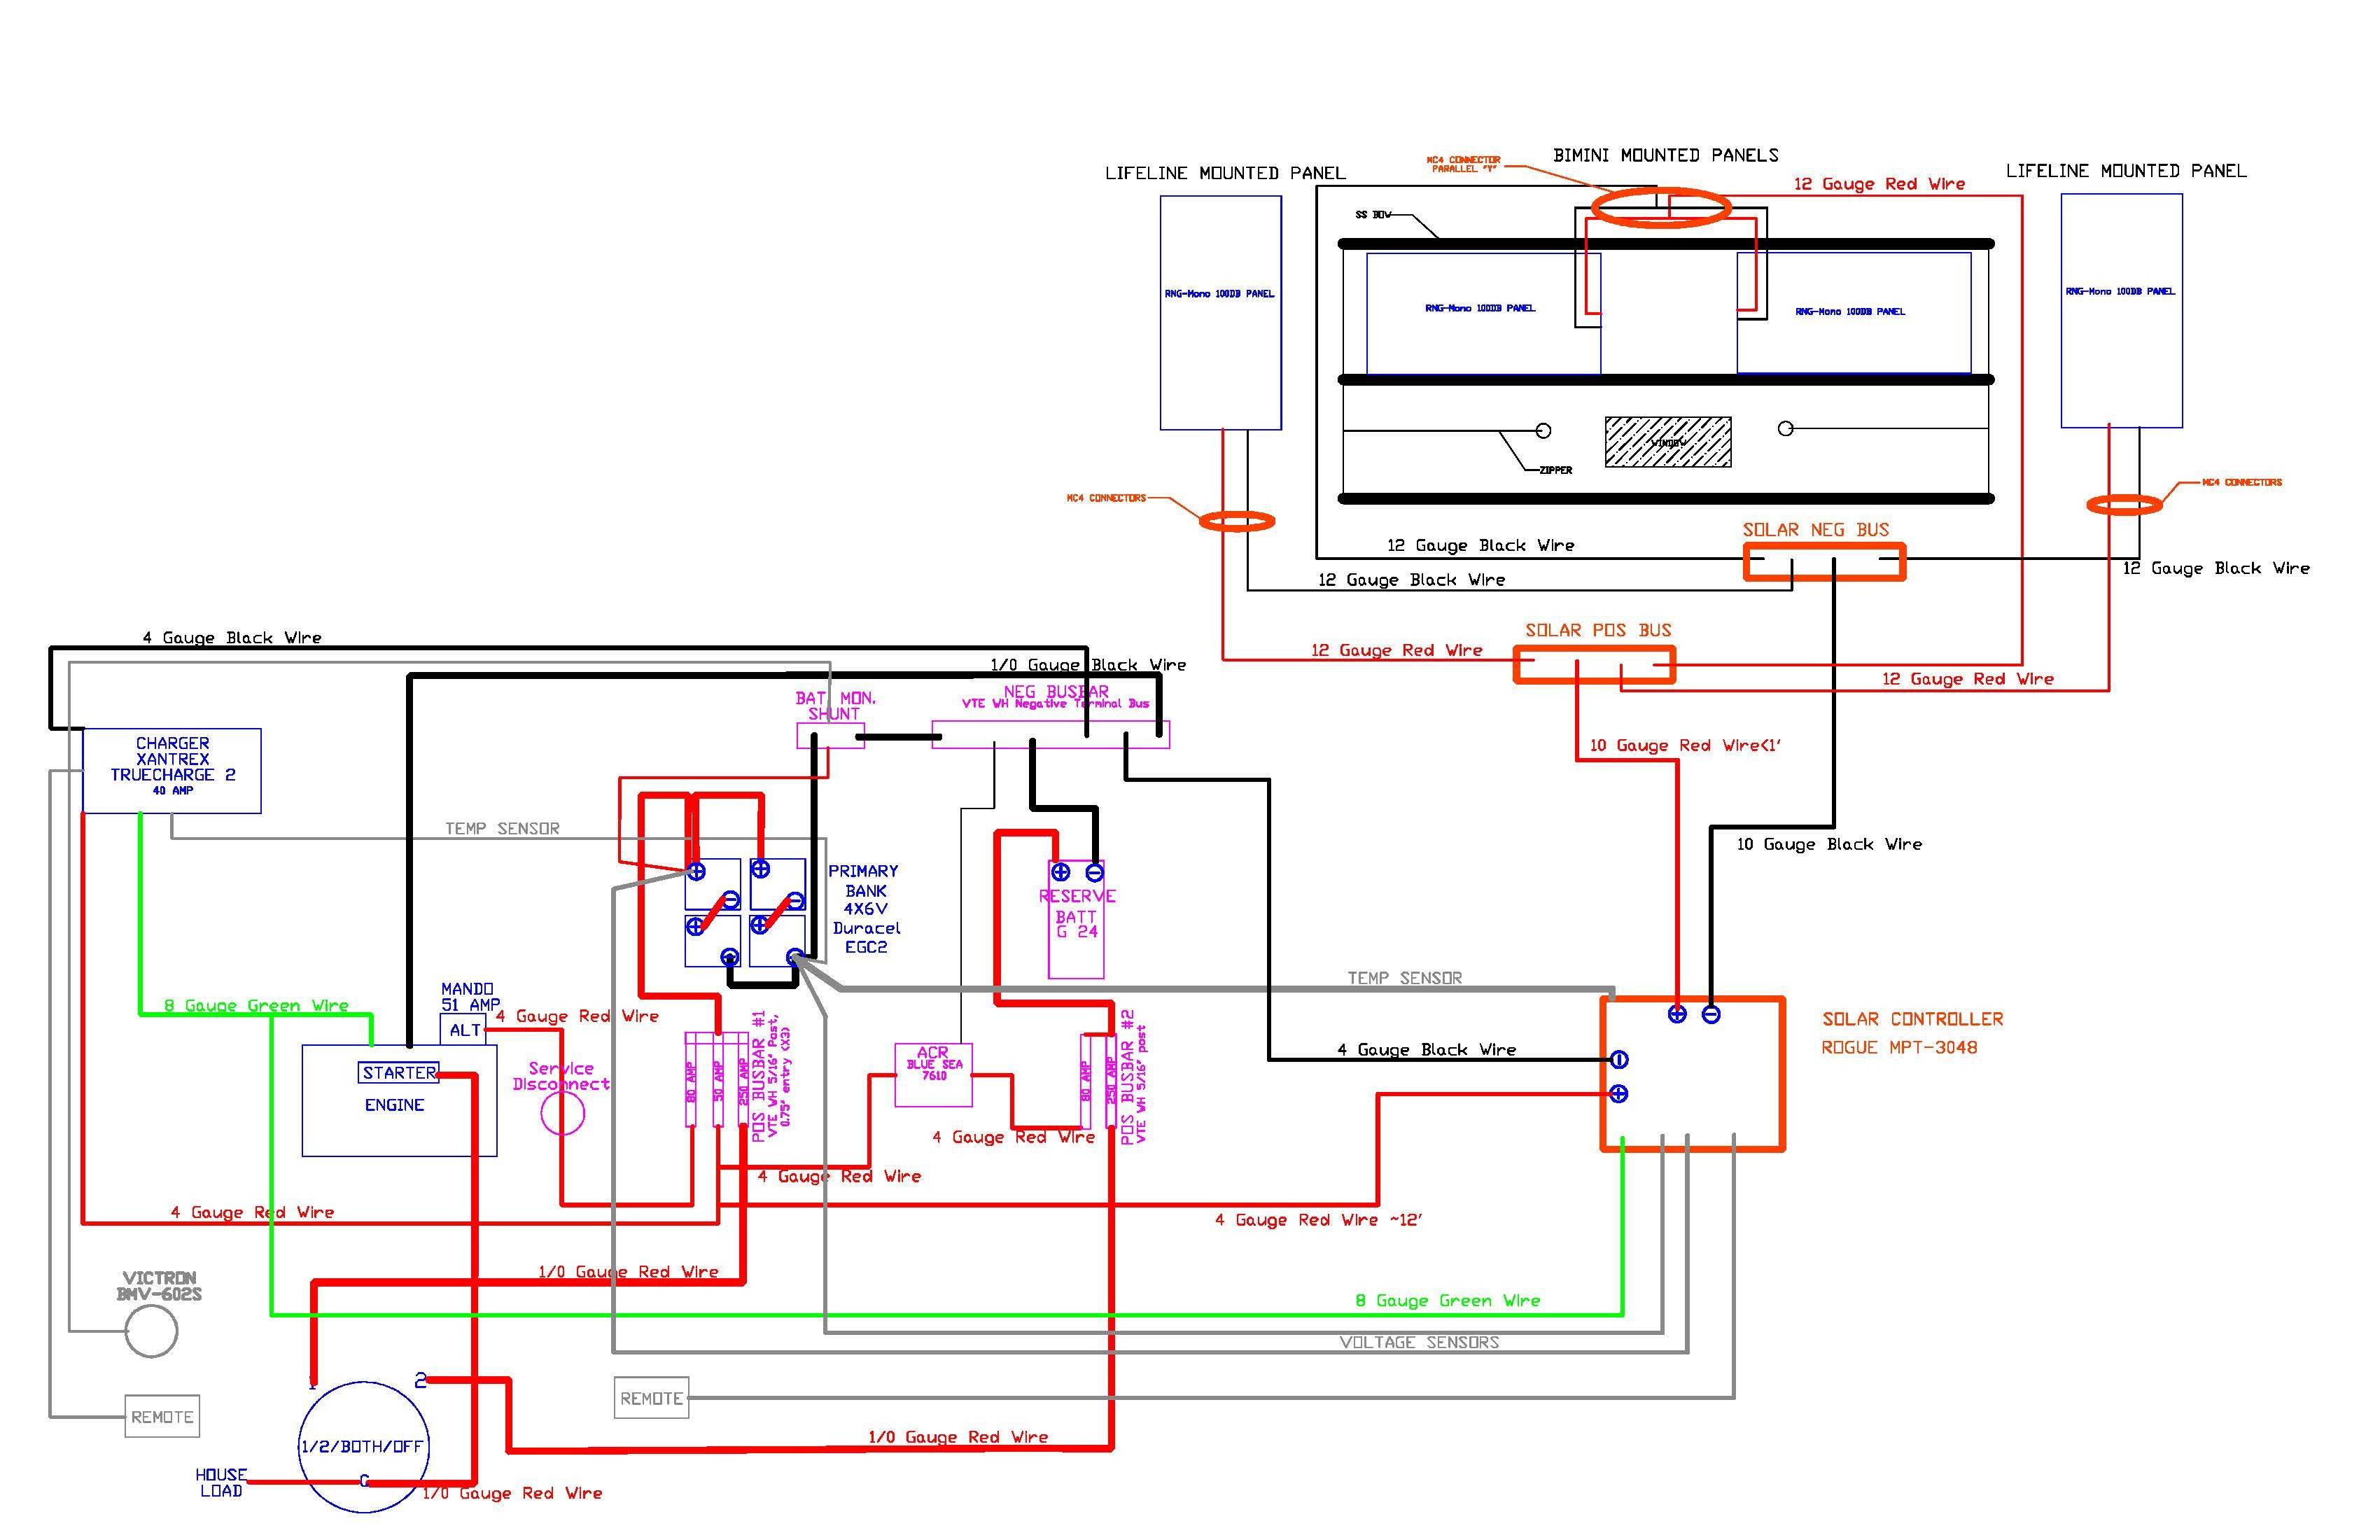 Solar Panels Wiring Diagram Installation Wiring Diagram Solar Panels Inverter Fresh Wiring Diagram For F Grid Solar System Valid Electrical System B on Mercruiser Electrical System Wiring Diagrams